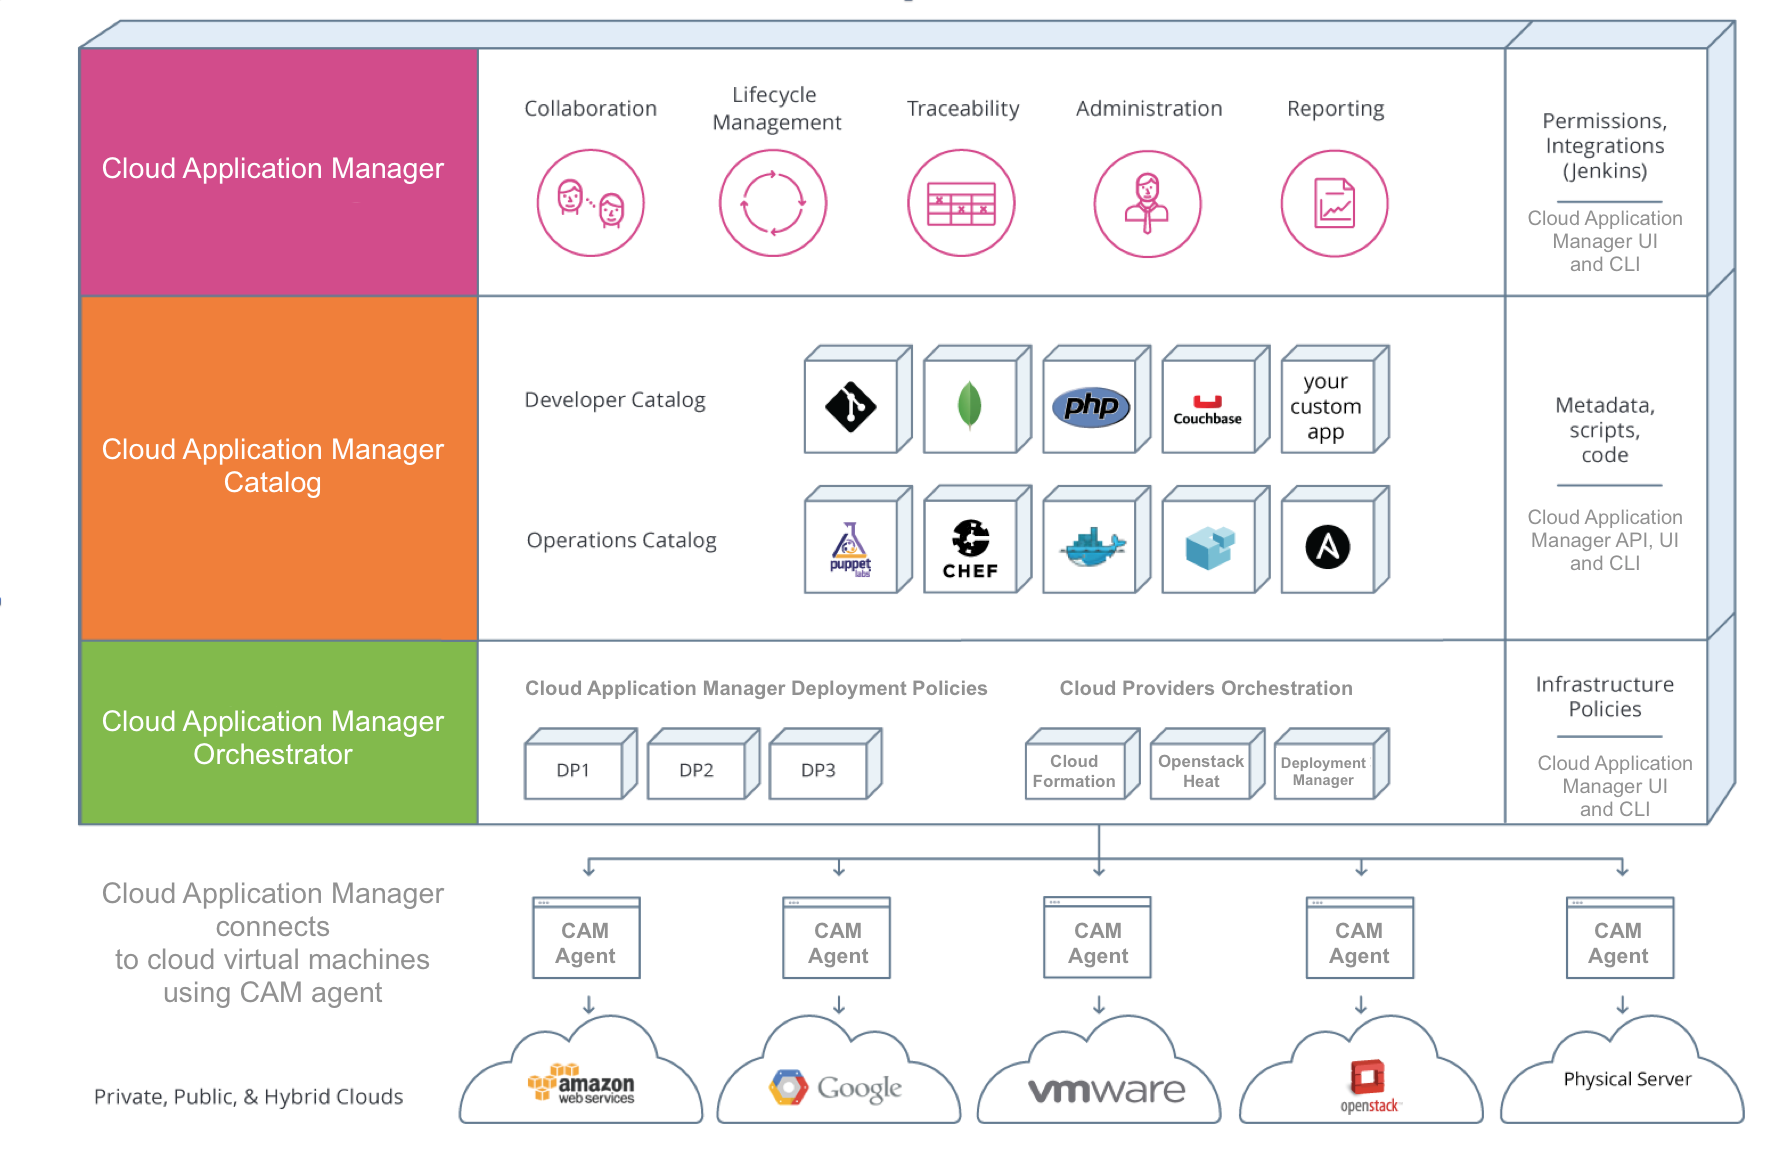 Cloud Application Manager Components